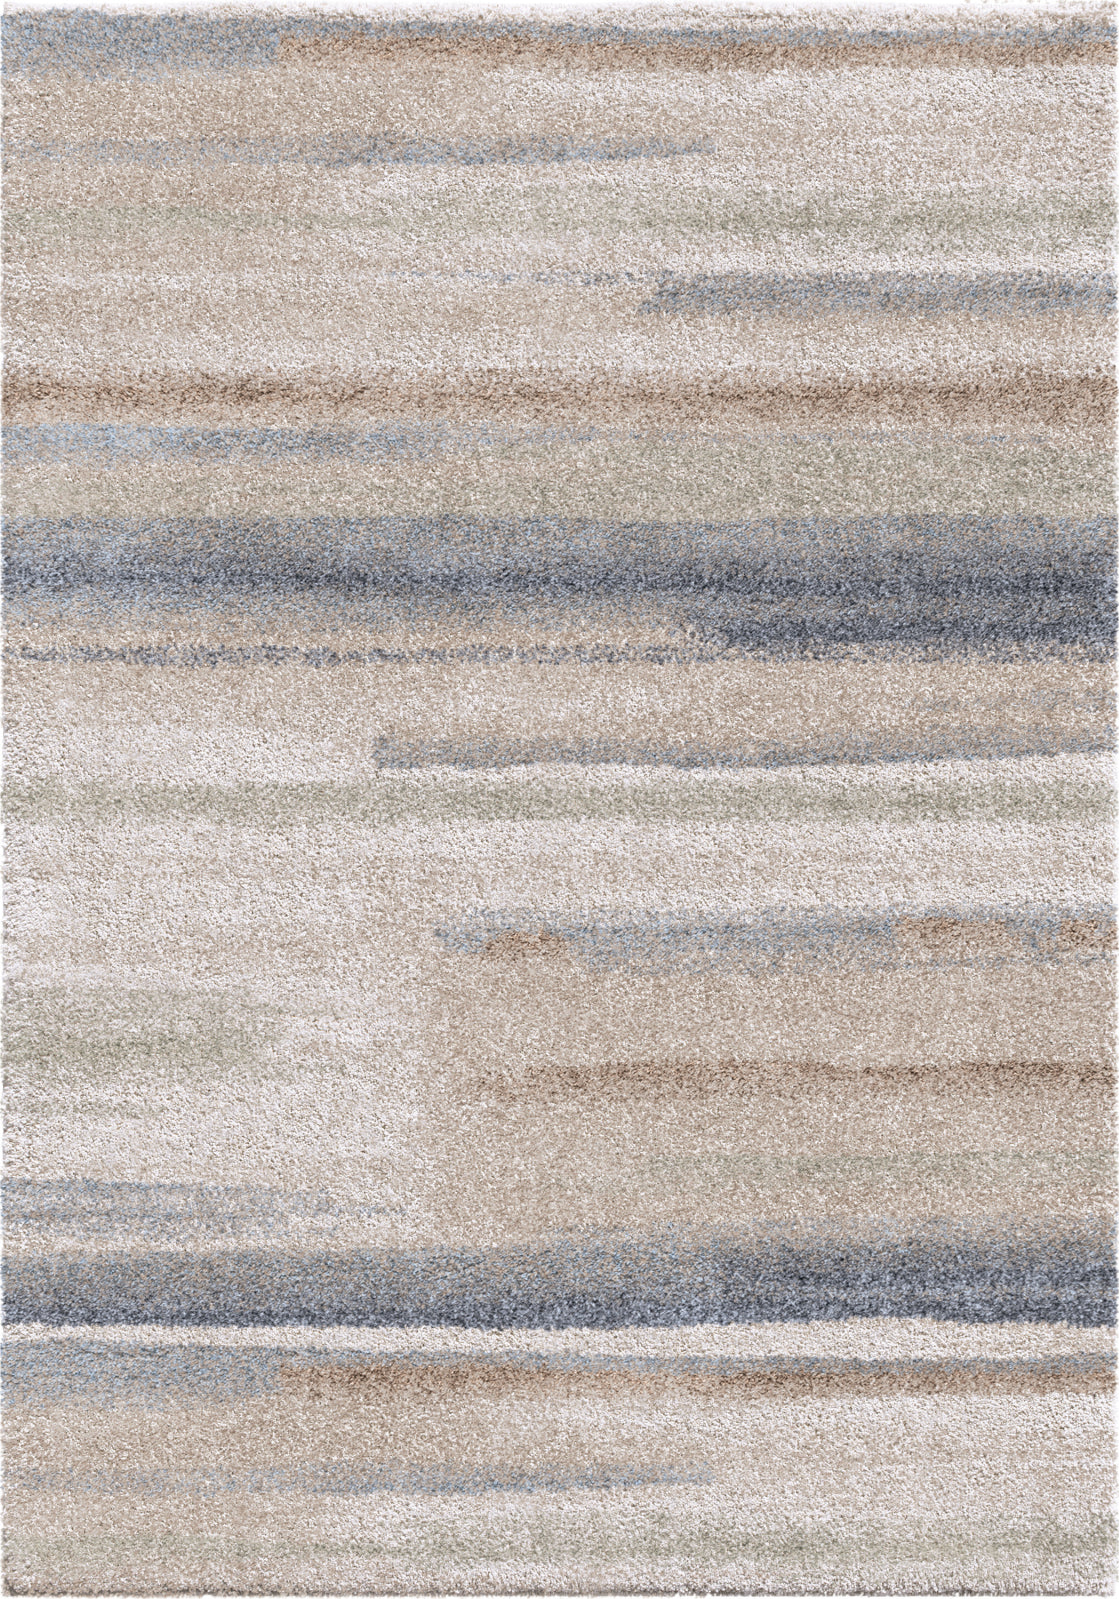 Orian Rugs Mystical Modern Motion Muted Blue Area Rug by Palmetto Living main image